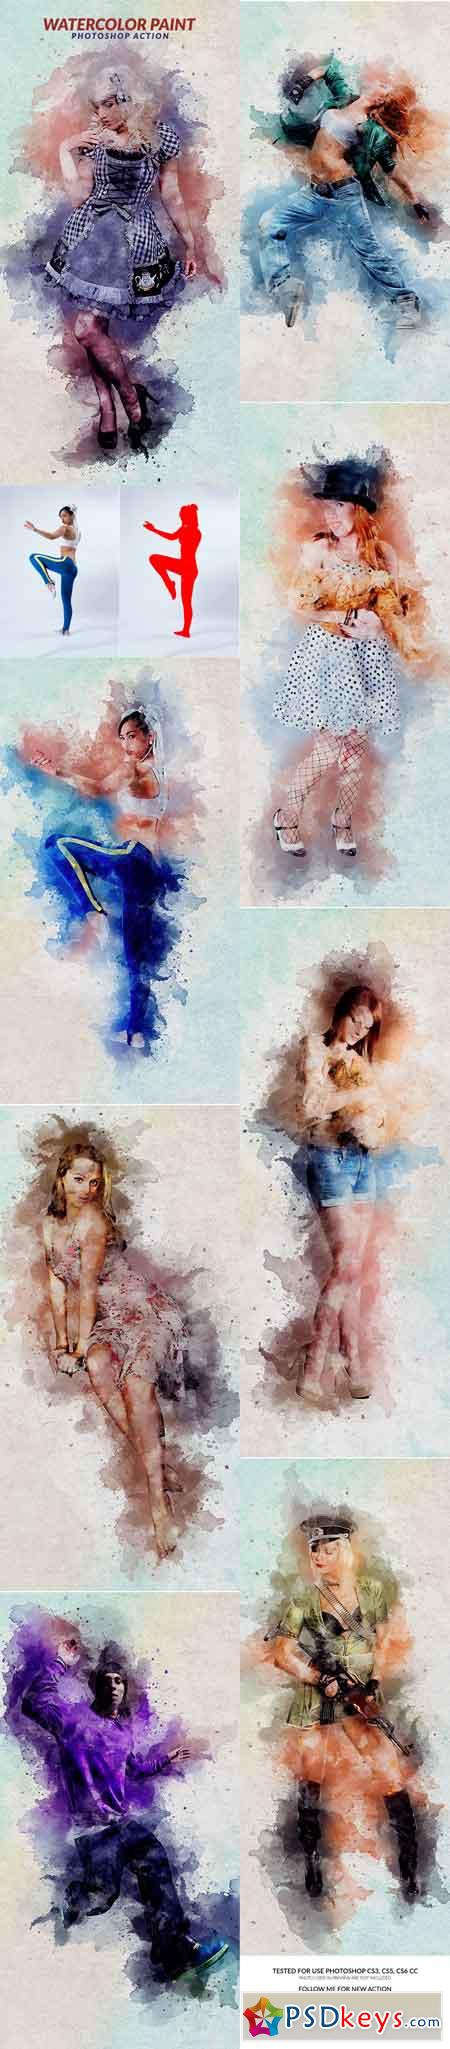 Watercolor Paint Photoshop Action 17947441